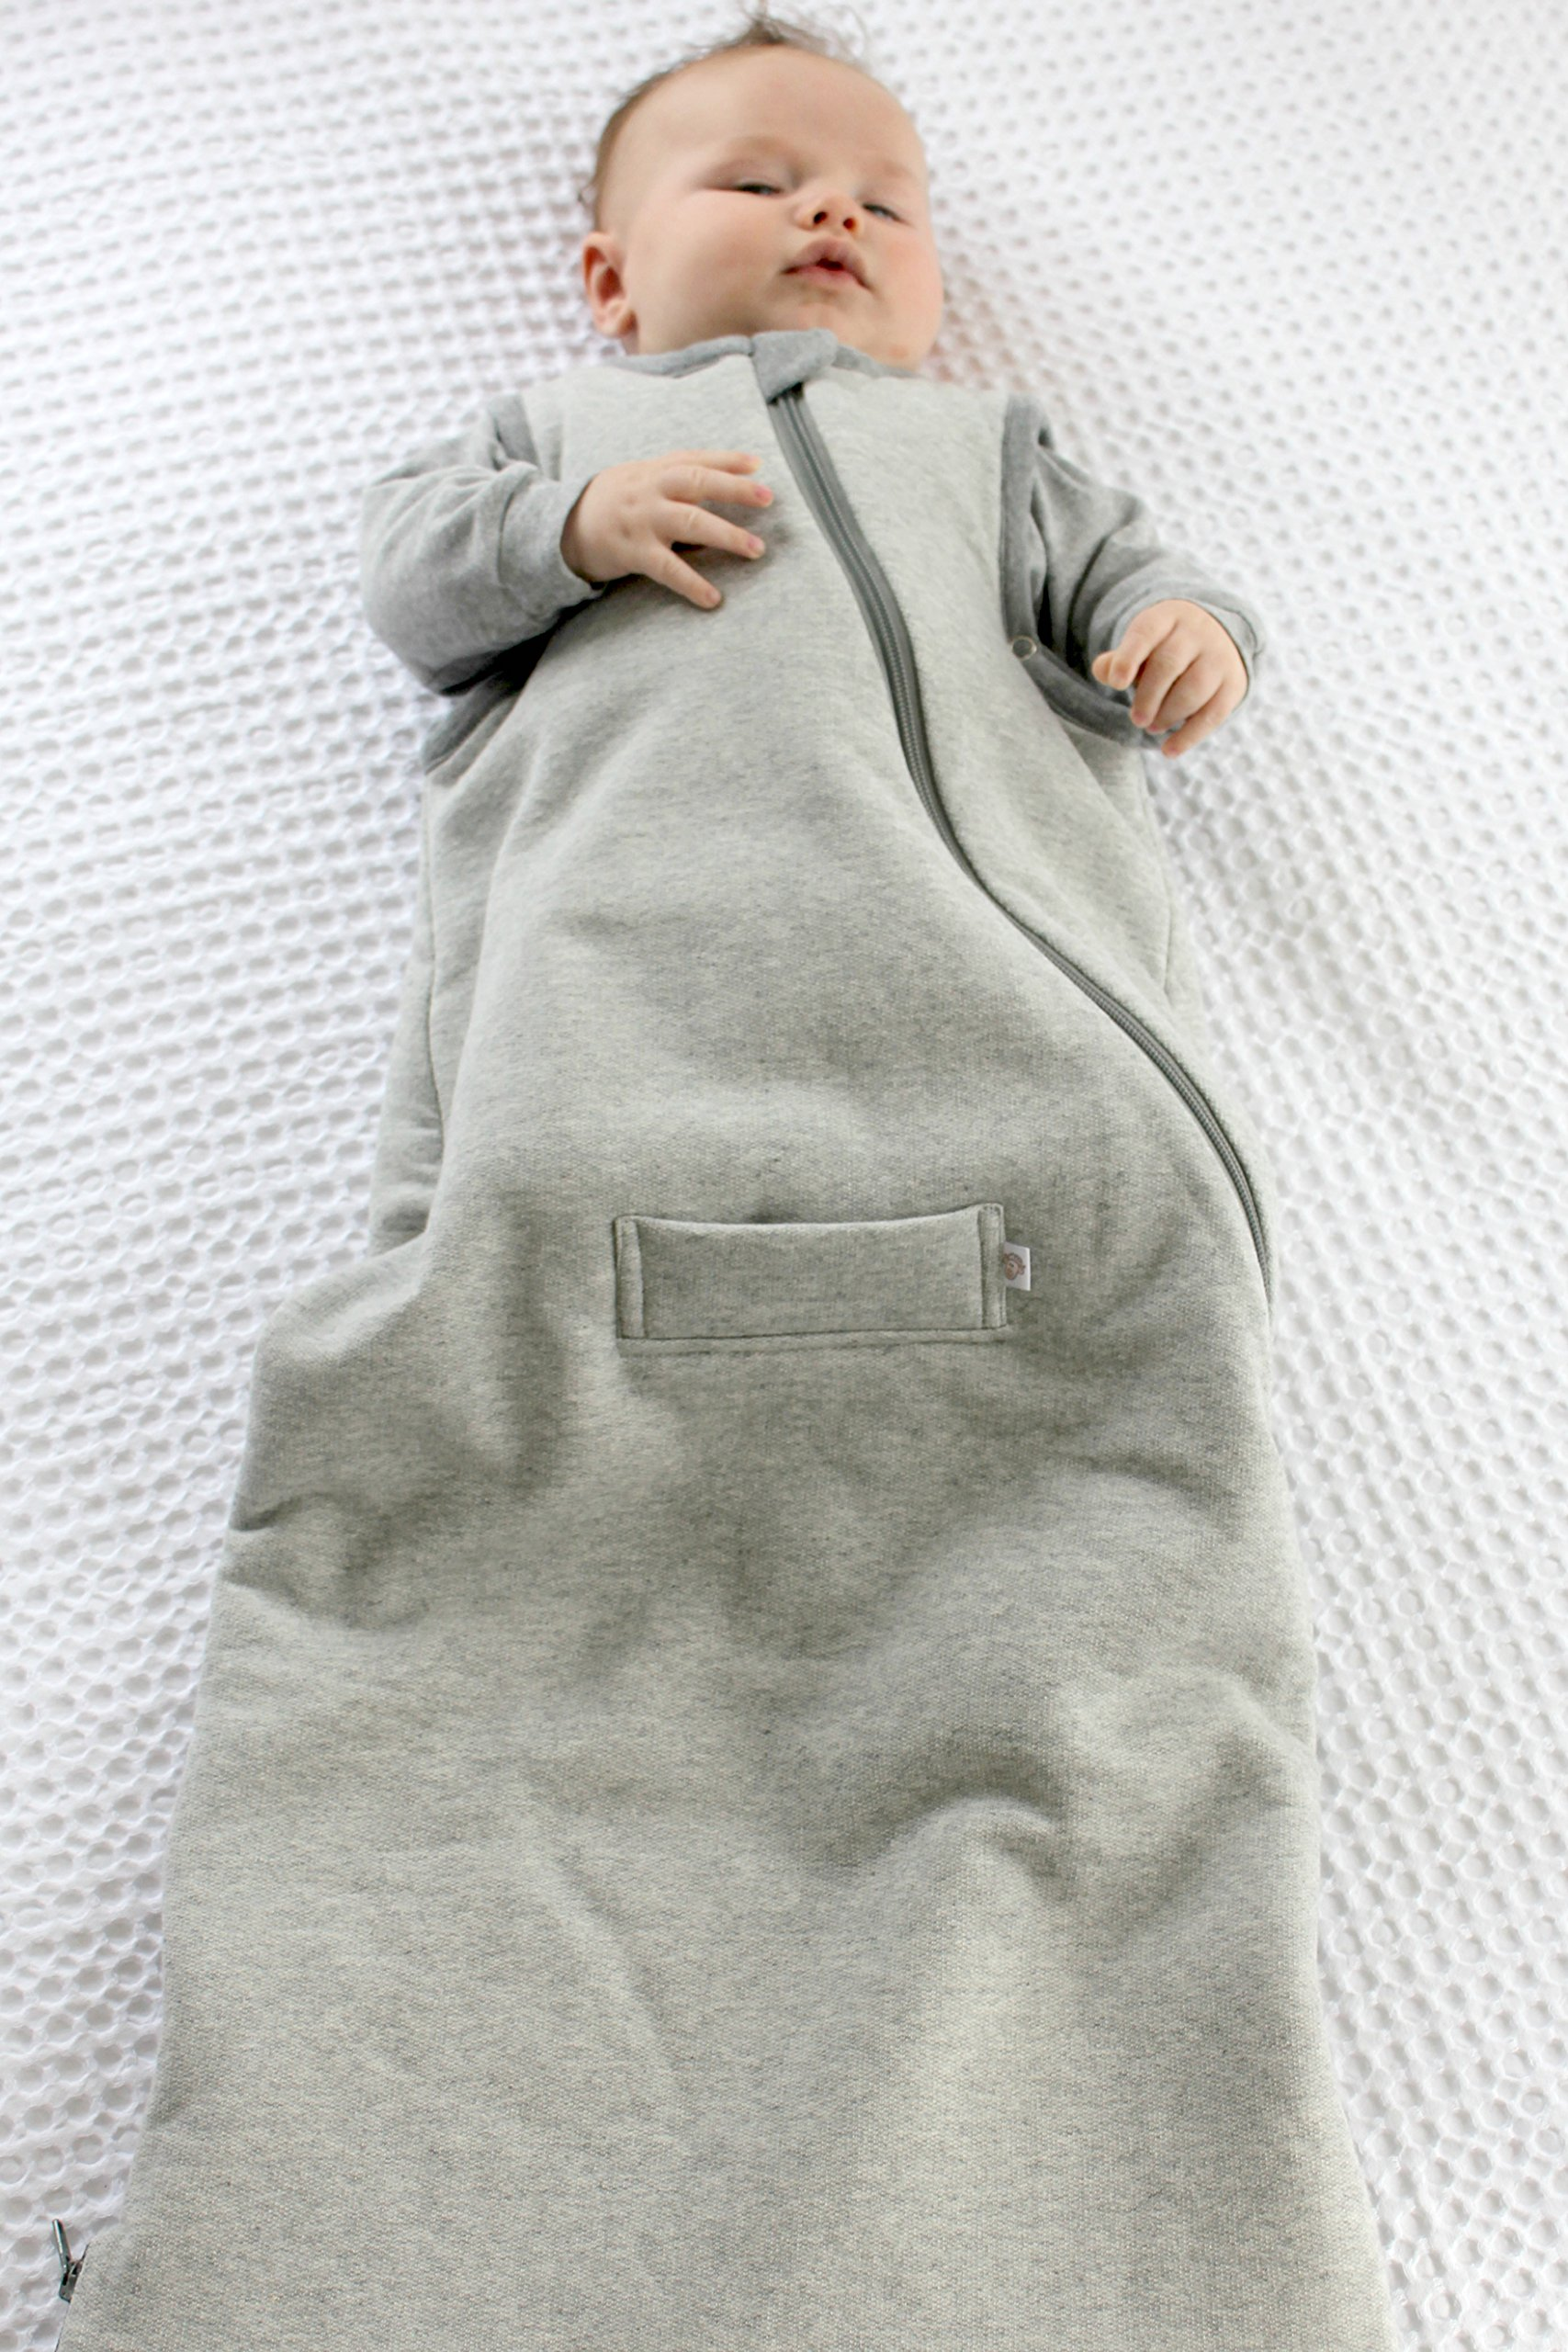 WINTER HIGH COUNTRY DELUXE MERINO baby Sleeping Bag/ Sleep Bag, 0-2 yrs old, Moonlight